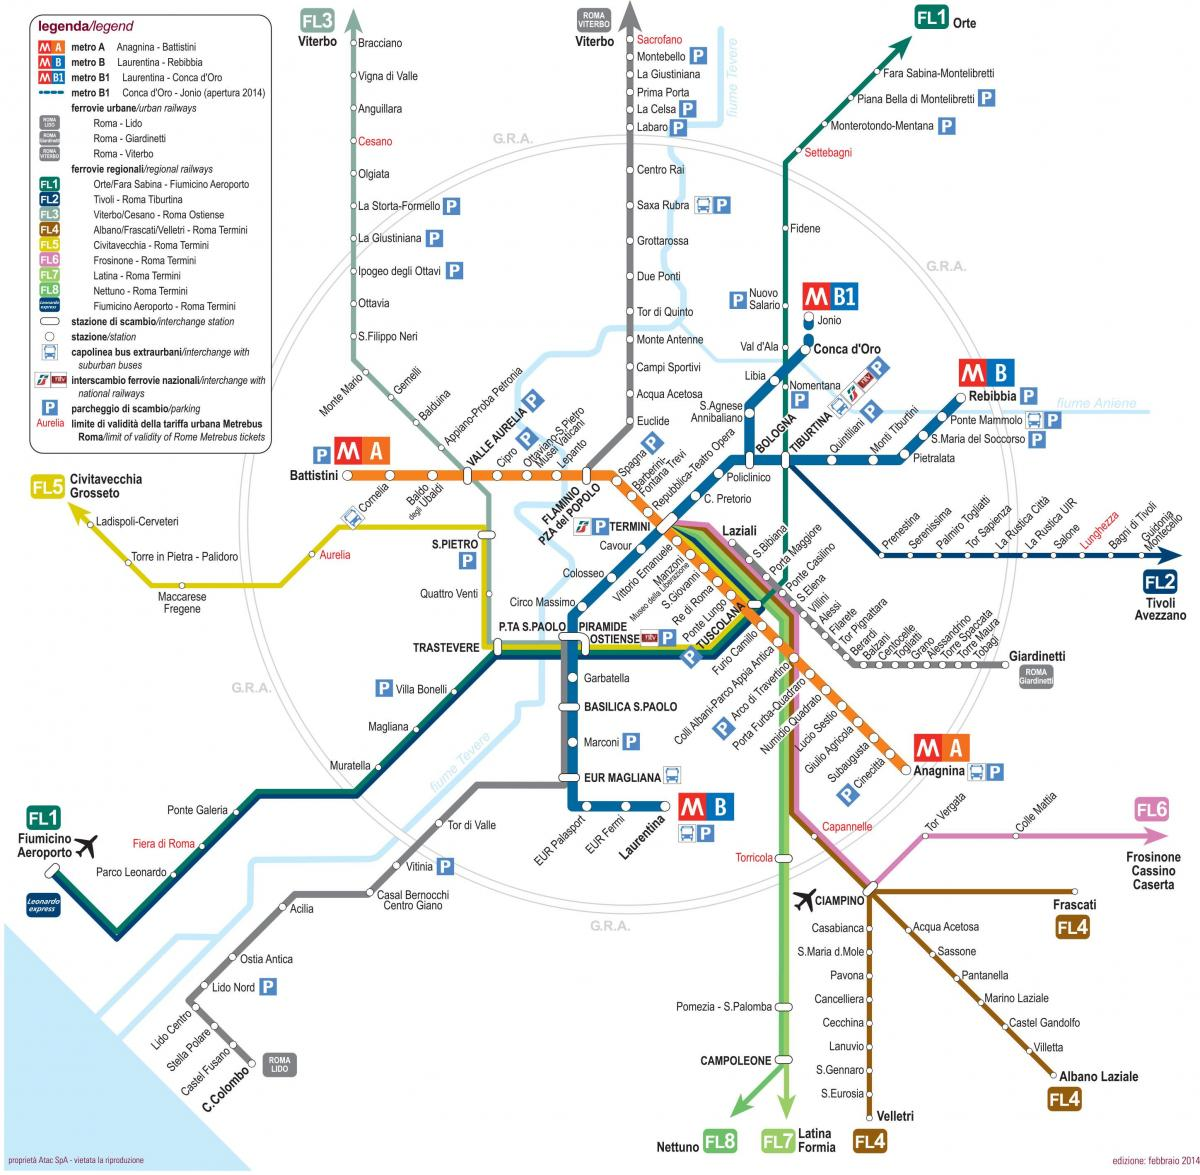 Map of Rome public transit